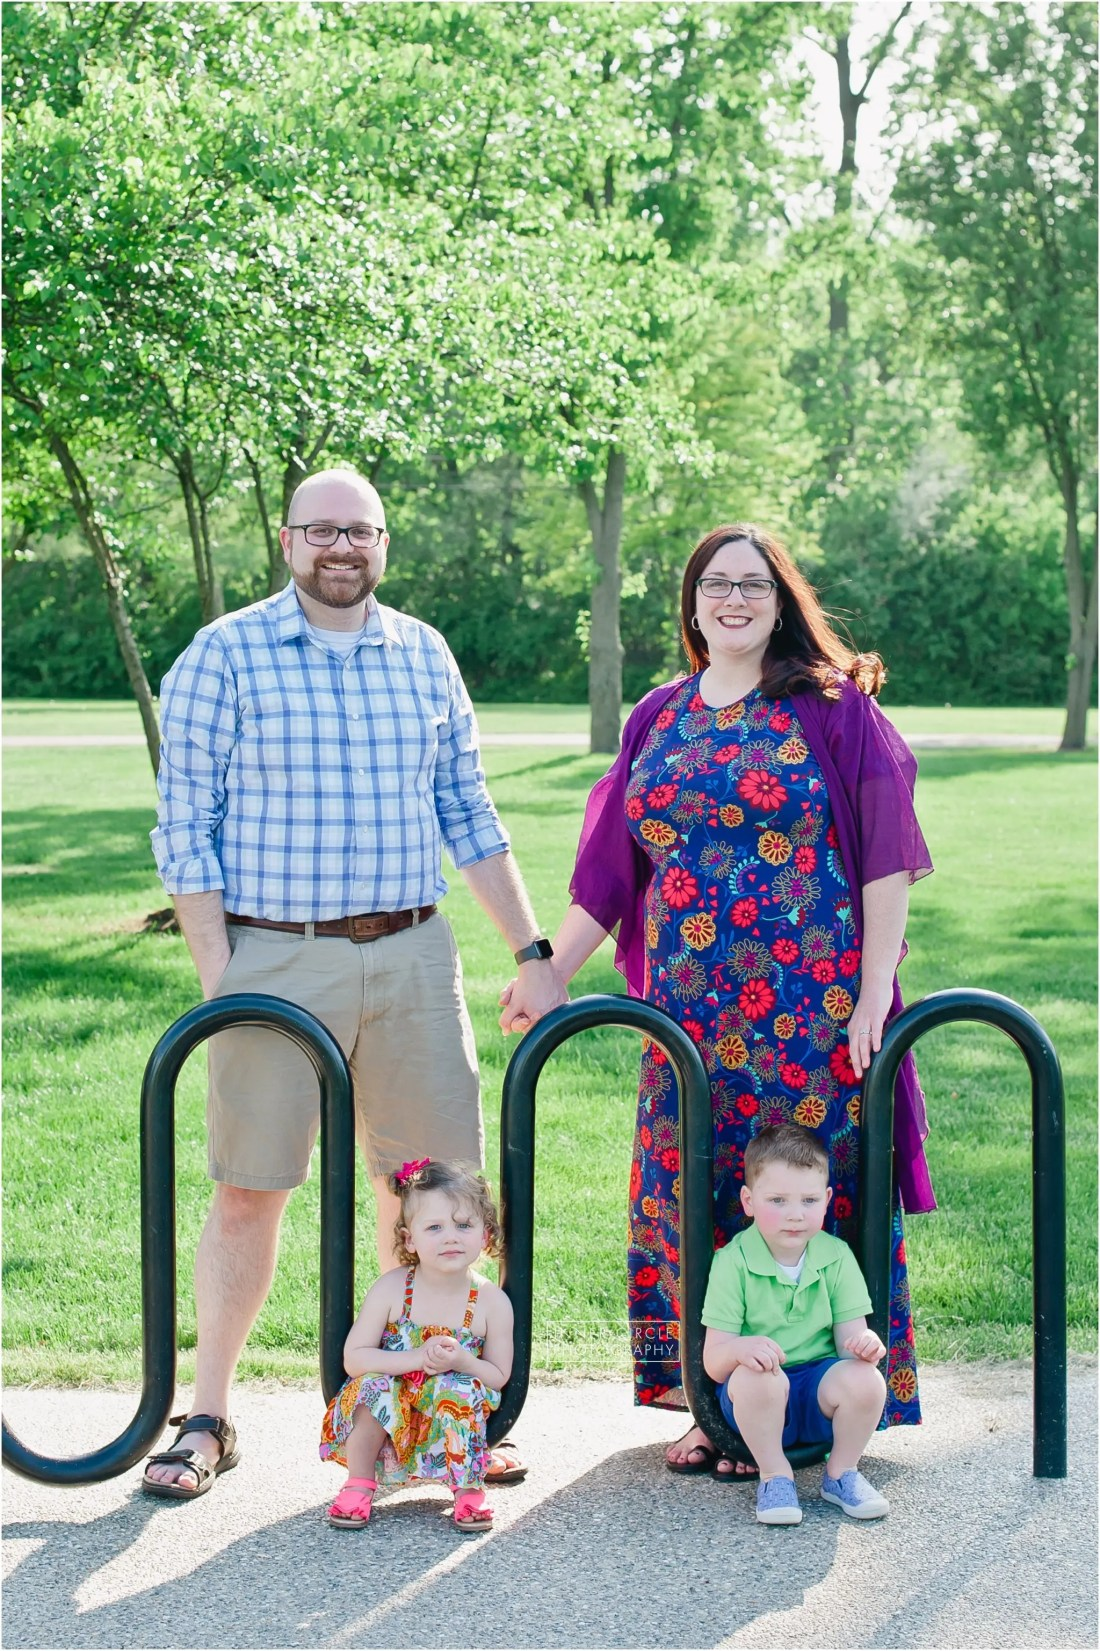 SIMMSFamily_2018_InnerCirclePhoto_009 Simms Family :: 2018 :: Clinton Township, Michigan